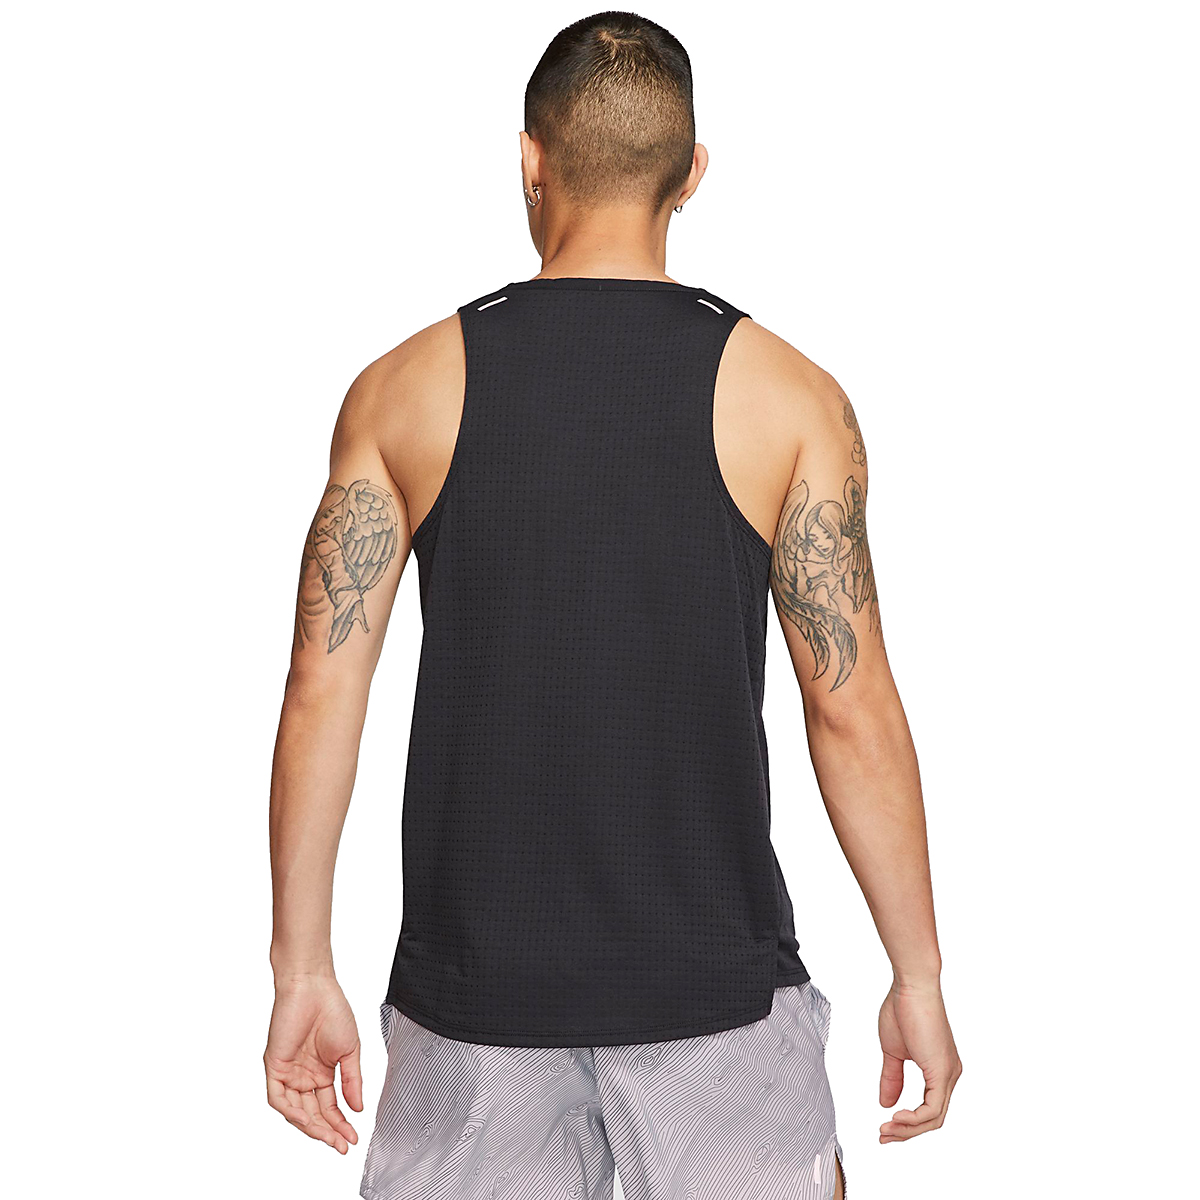 Men's Nike Rise 365 Trail Running Tank - Color: Black/Laser Crimson - Size: S, Black/Laser Crimson, large, image 2